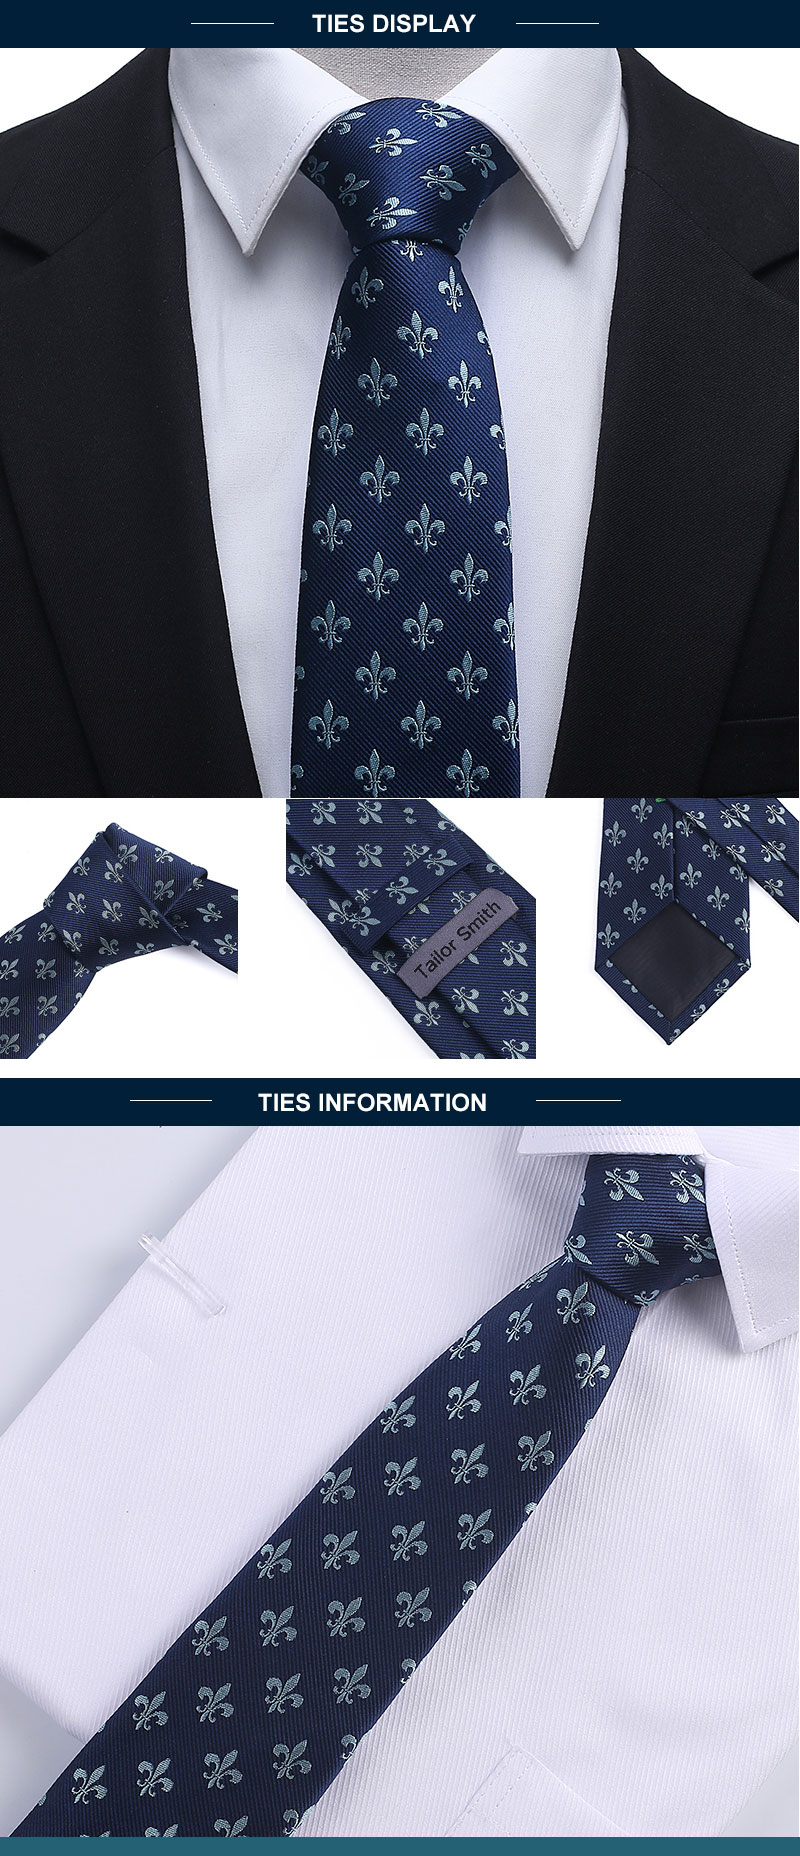 Men Kravat Cravatta Necktie Men's Vestidos Business Wedding Tie Male Dress Legame Gift Gravata Jacquard Woven for sale